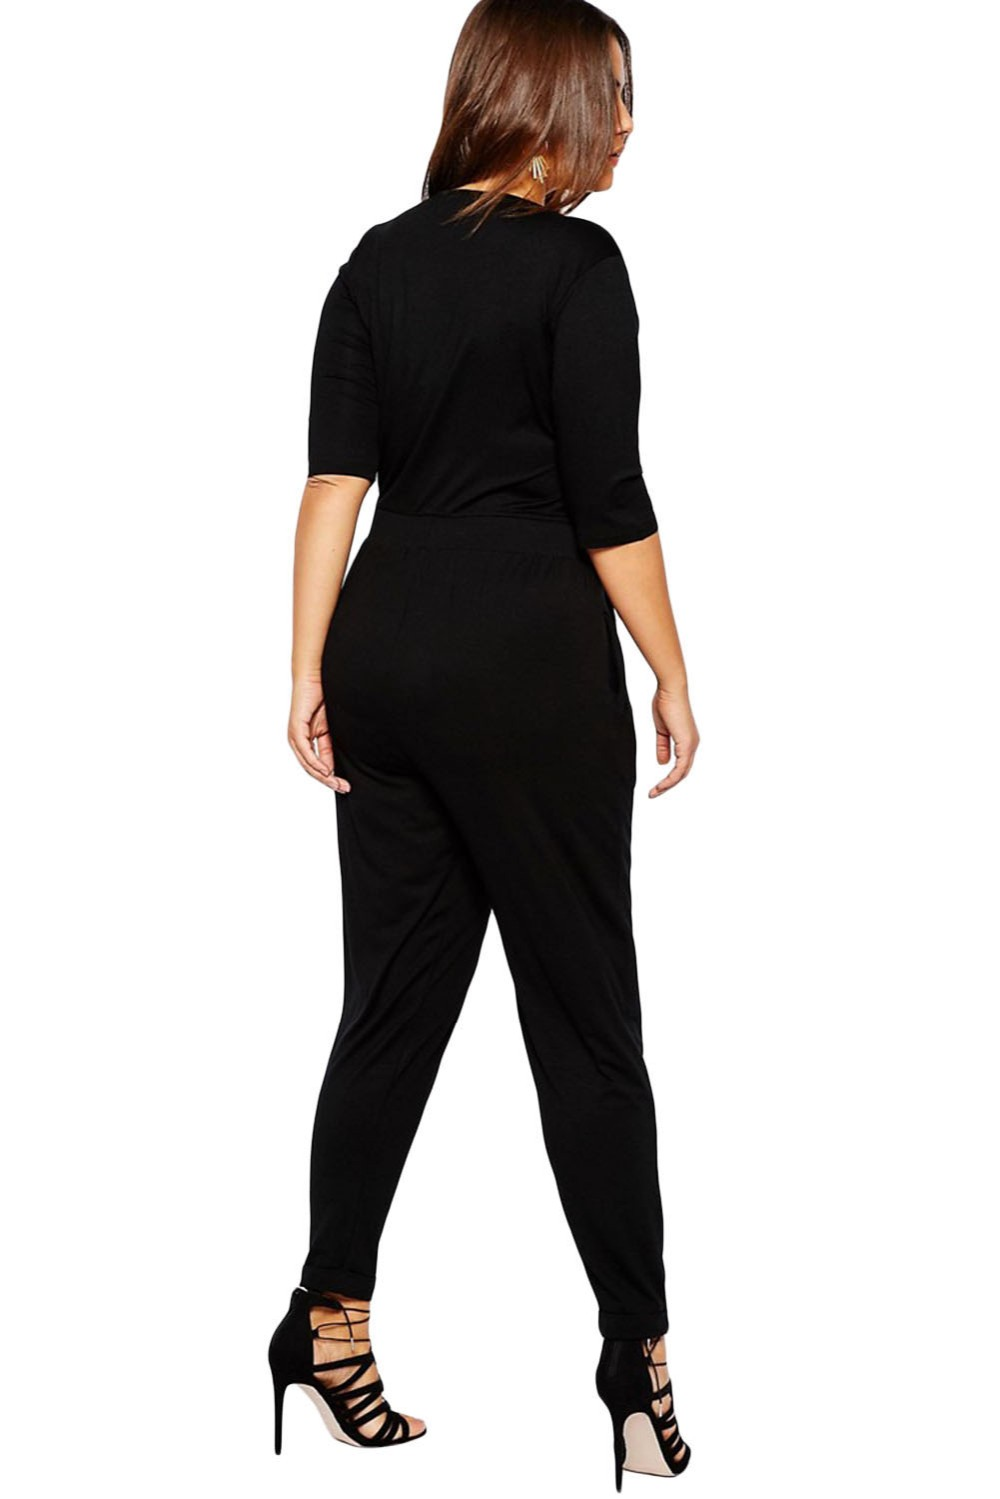 Black-Plus-Size-Wrap-V-Neck-Jumpsuit-LC64206-2-4